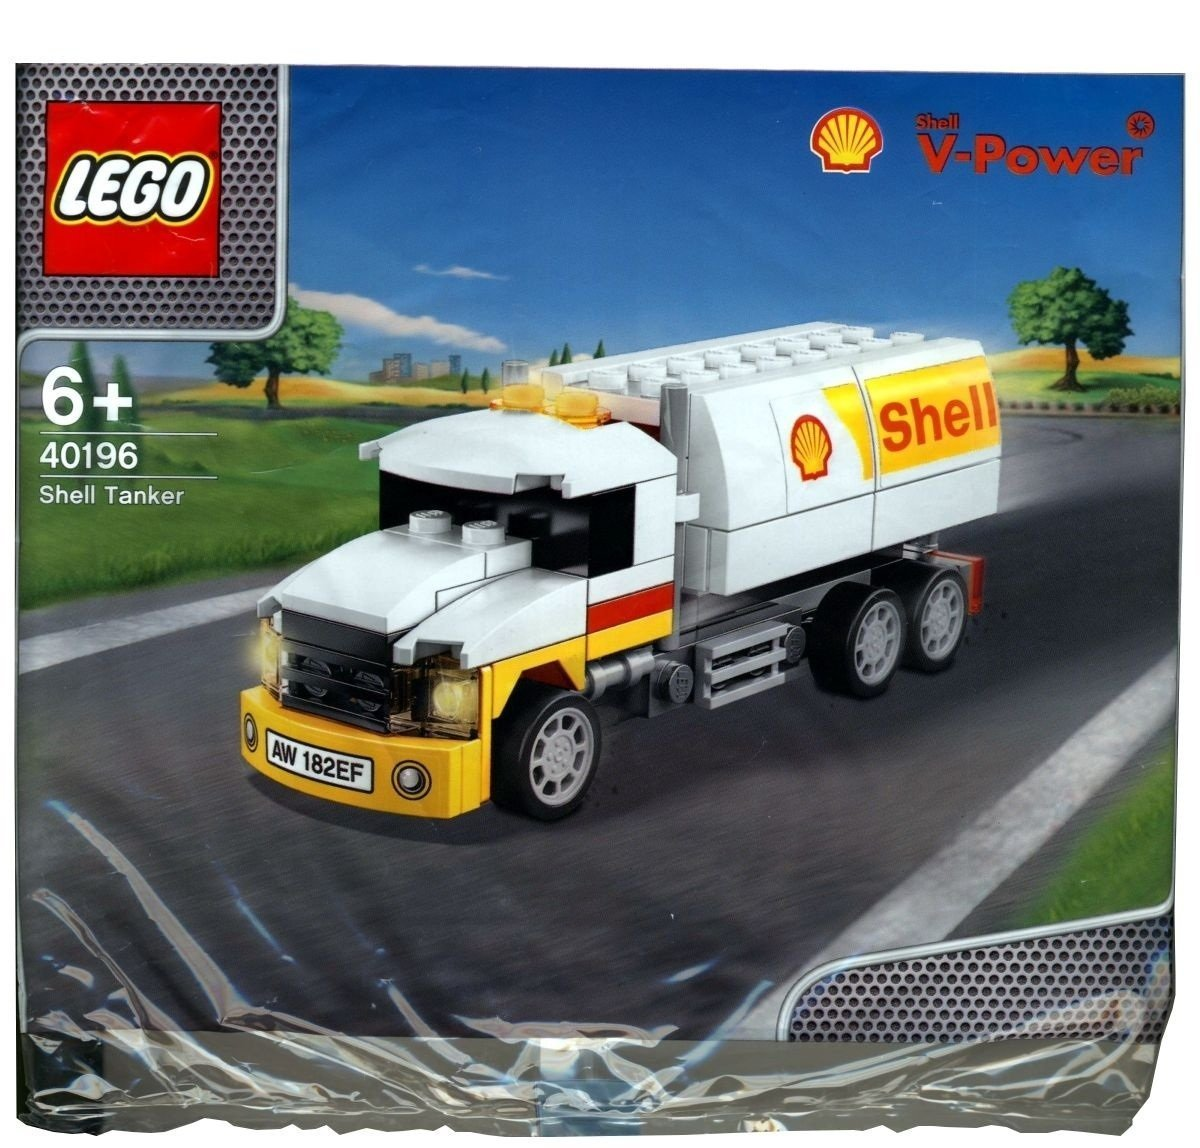 2014 The New Shell V-power Lego Collection Shell Tanker 40196 Limited Edition Sealed by LEGO